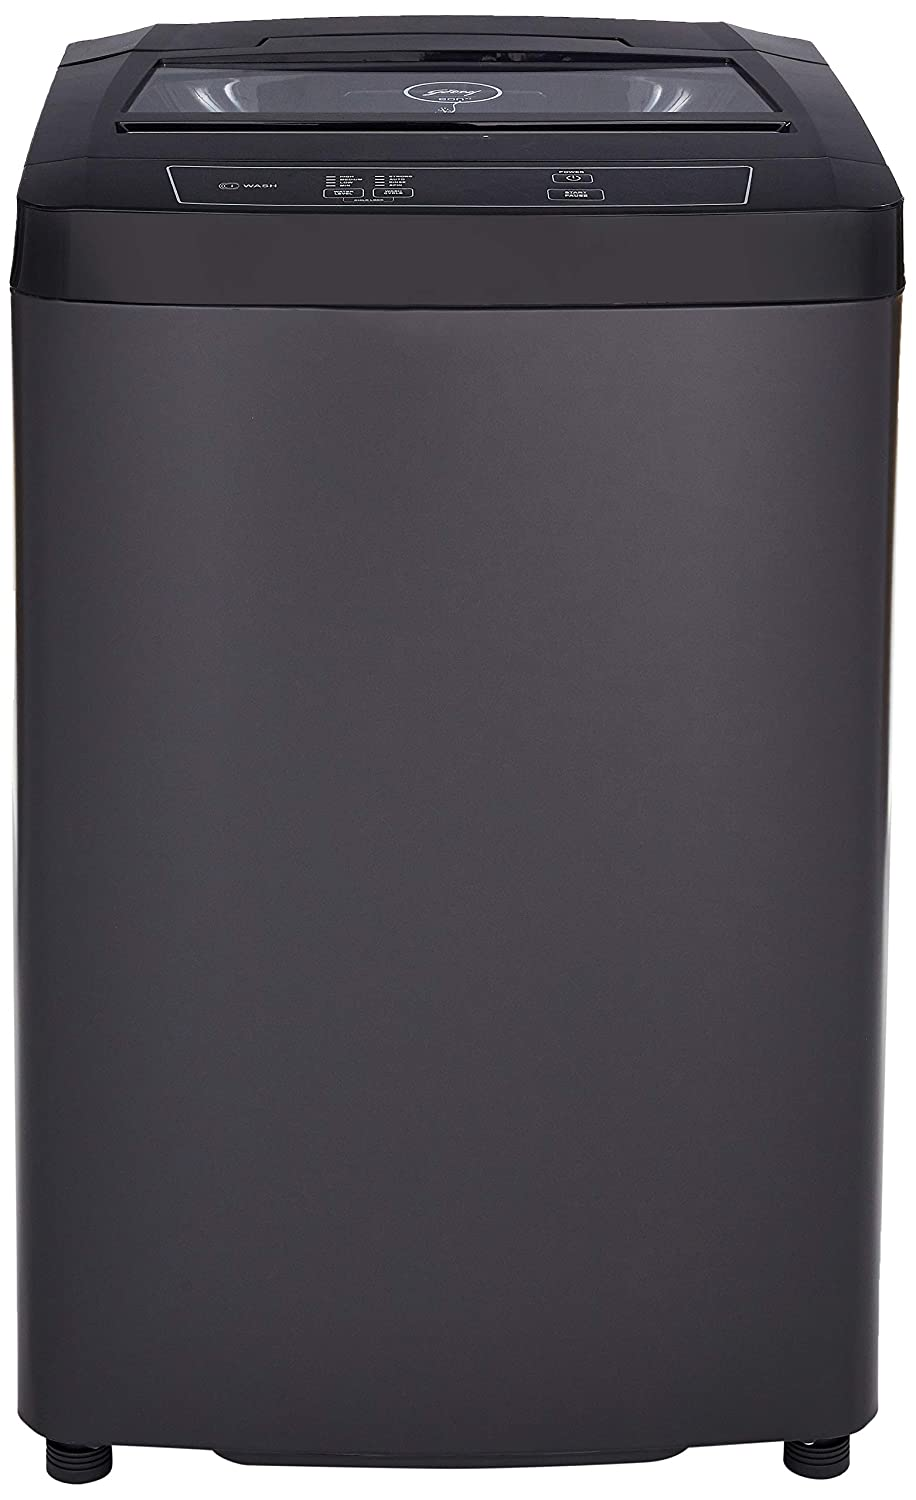 Godrej 6.2 Kg Fully-Automatic Top Loading Washing Machine (WT EON 620 A Gp Gr, Grey)